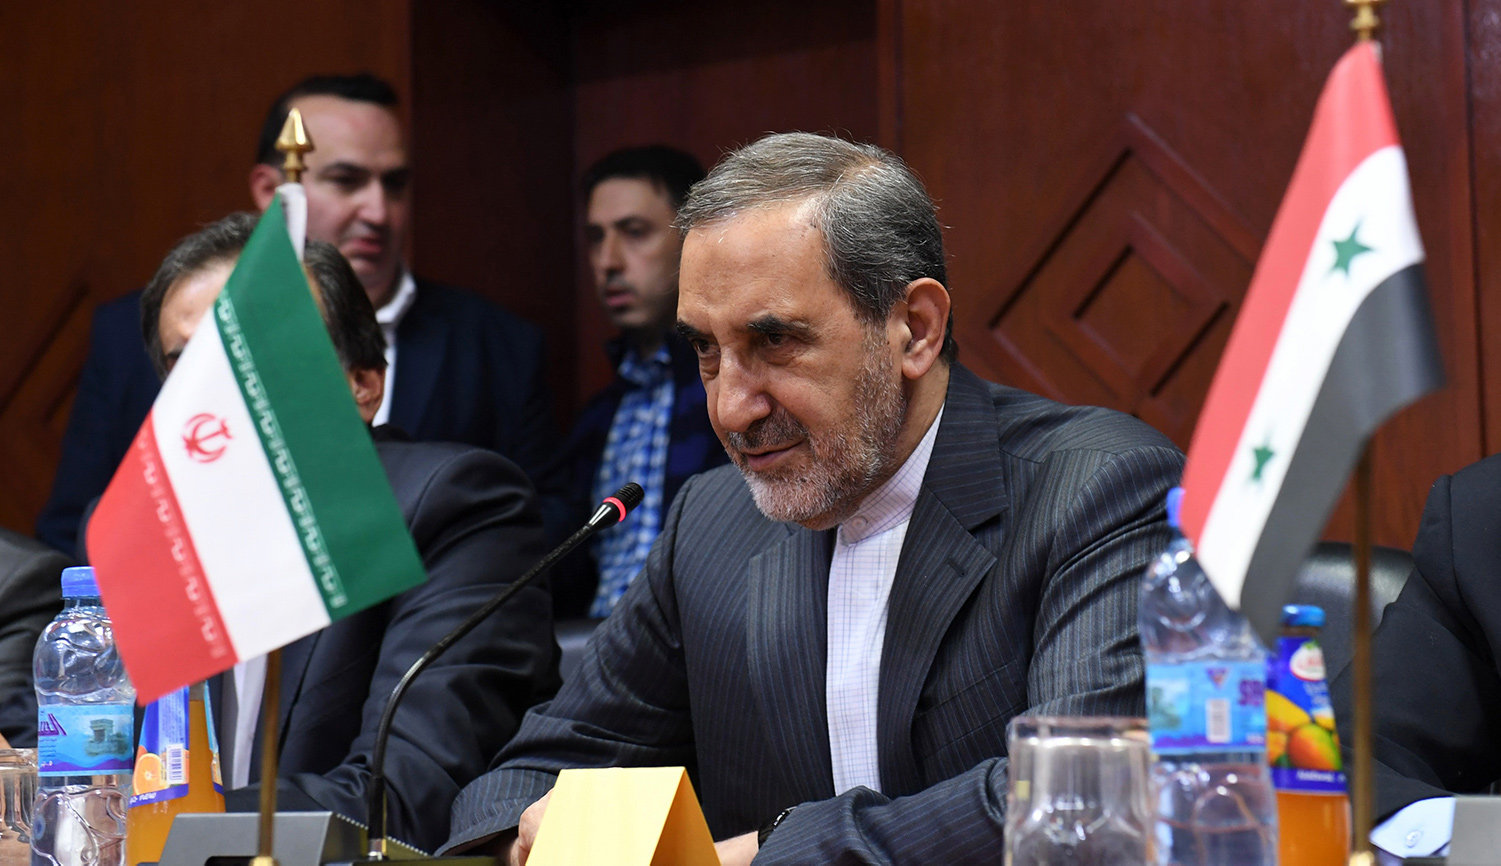 Ali Akbar Velayati (C), chief foreign policy advisor to Iran's supreme leader, on November 7, 2017, in Aleppo, Syria. GEORGE OURFALIAN/AFP/Getty Images.